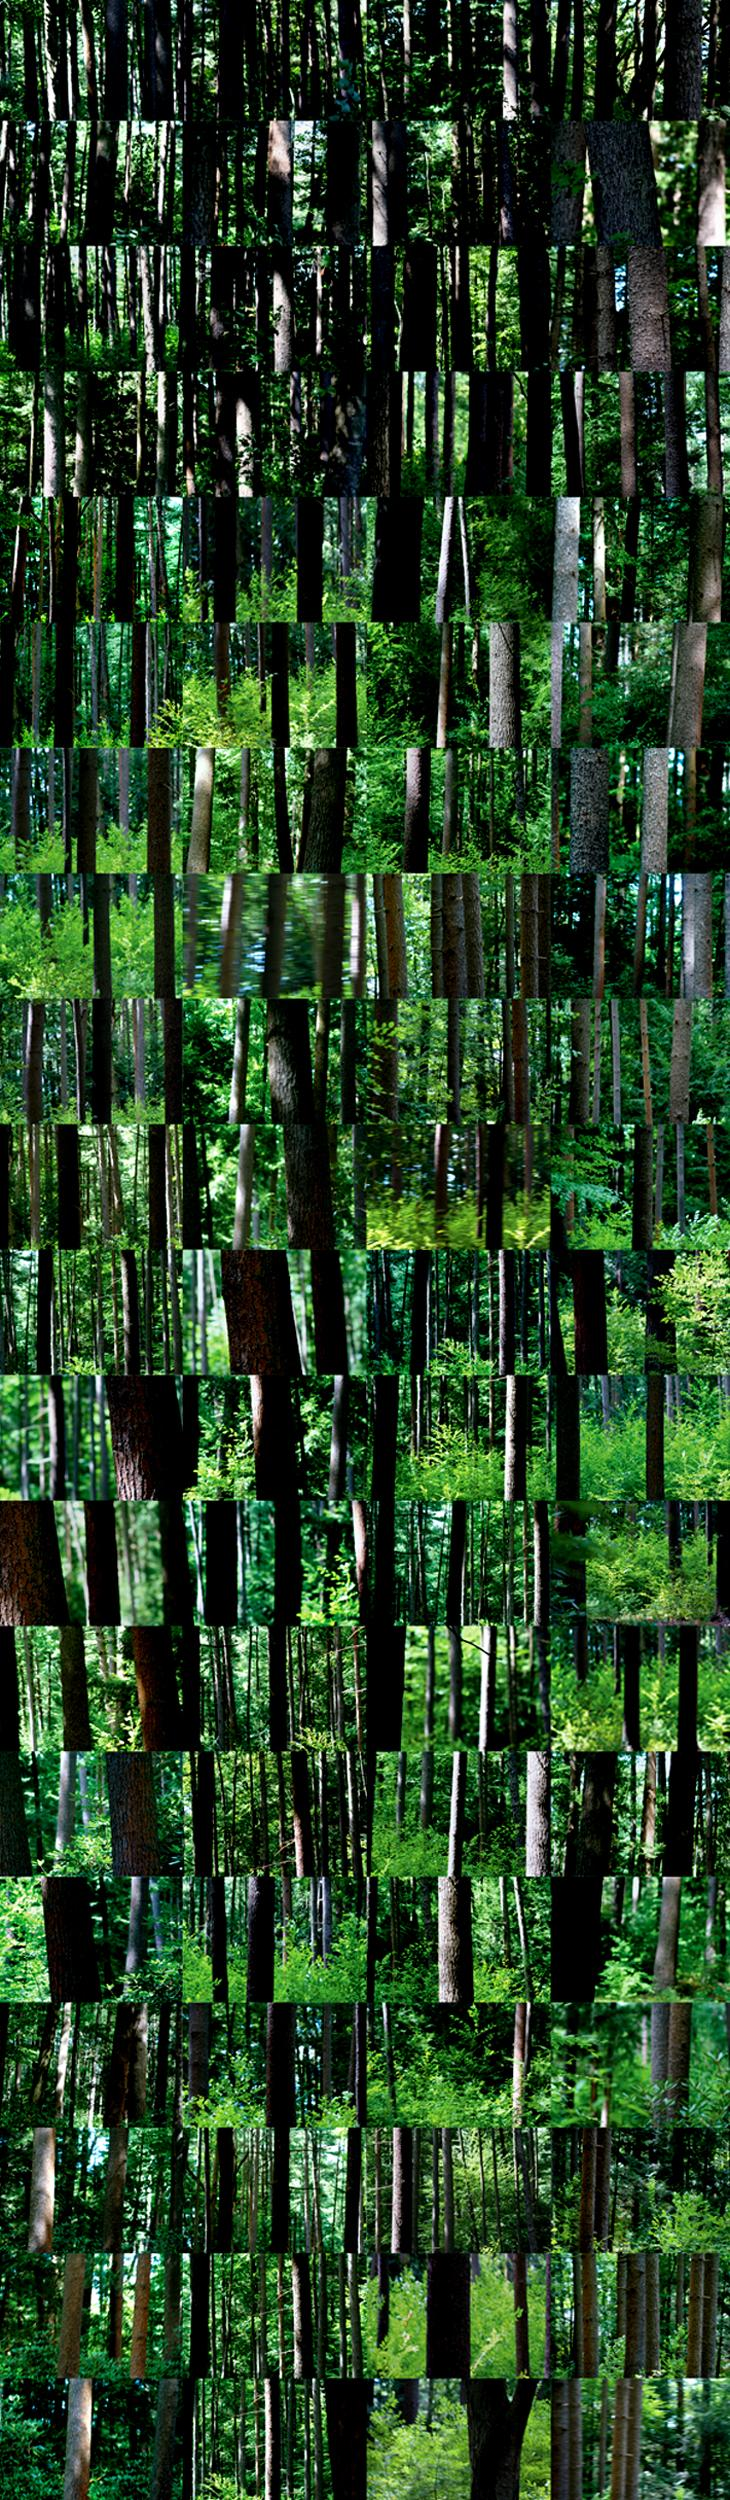 Simo Neri - I Can See the Forest for the Trees - 1